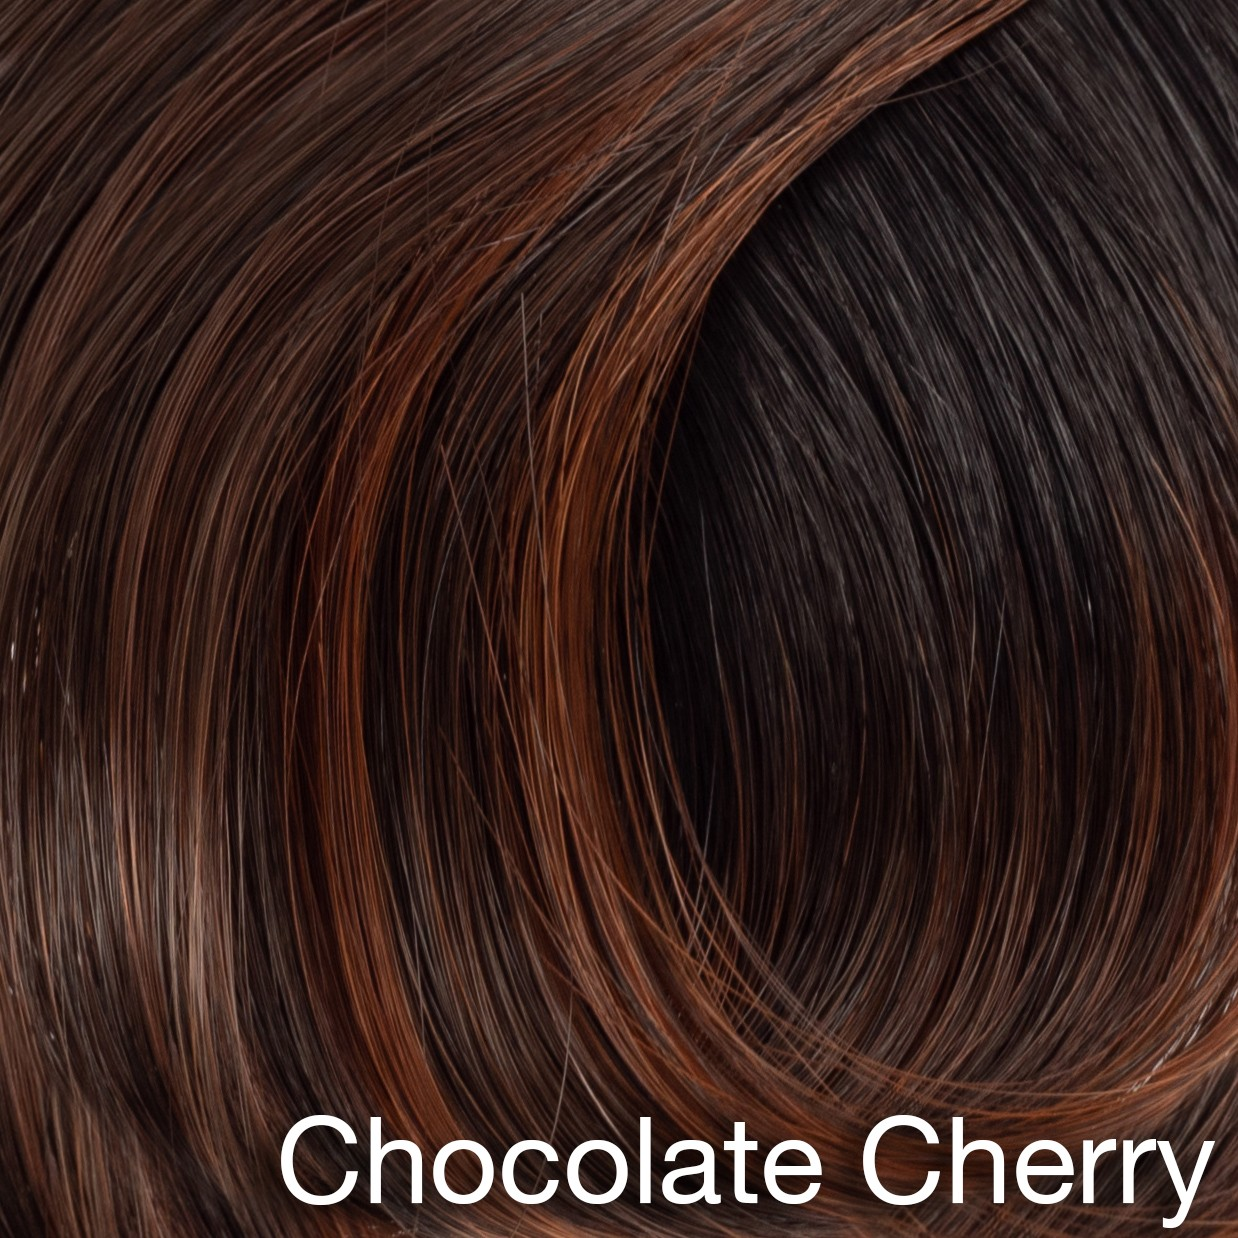 Chocolate Cherry Rooted